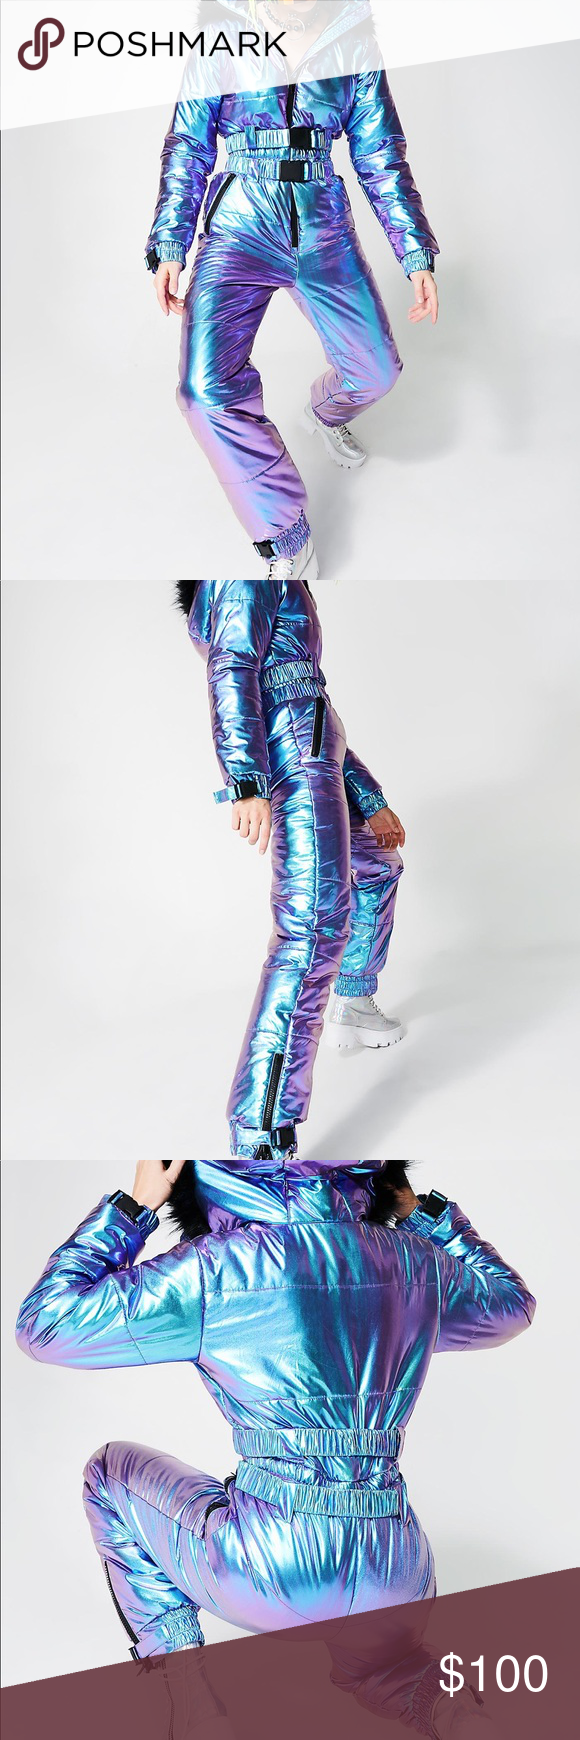 ecbb5a478 Club Exx snowsuit Club Exx Colder Than Your Heart Puffer One-Piece snow suit  will give 'em the chillz. This dope af iridescent jumpsuit has two buckles  at ...